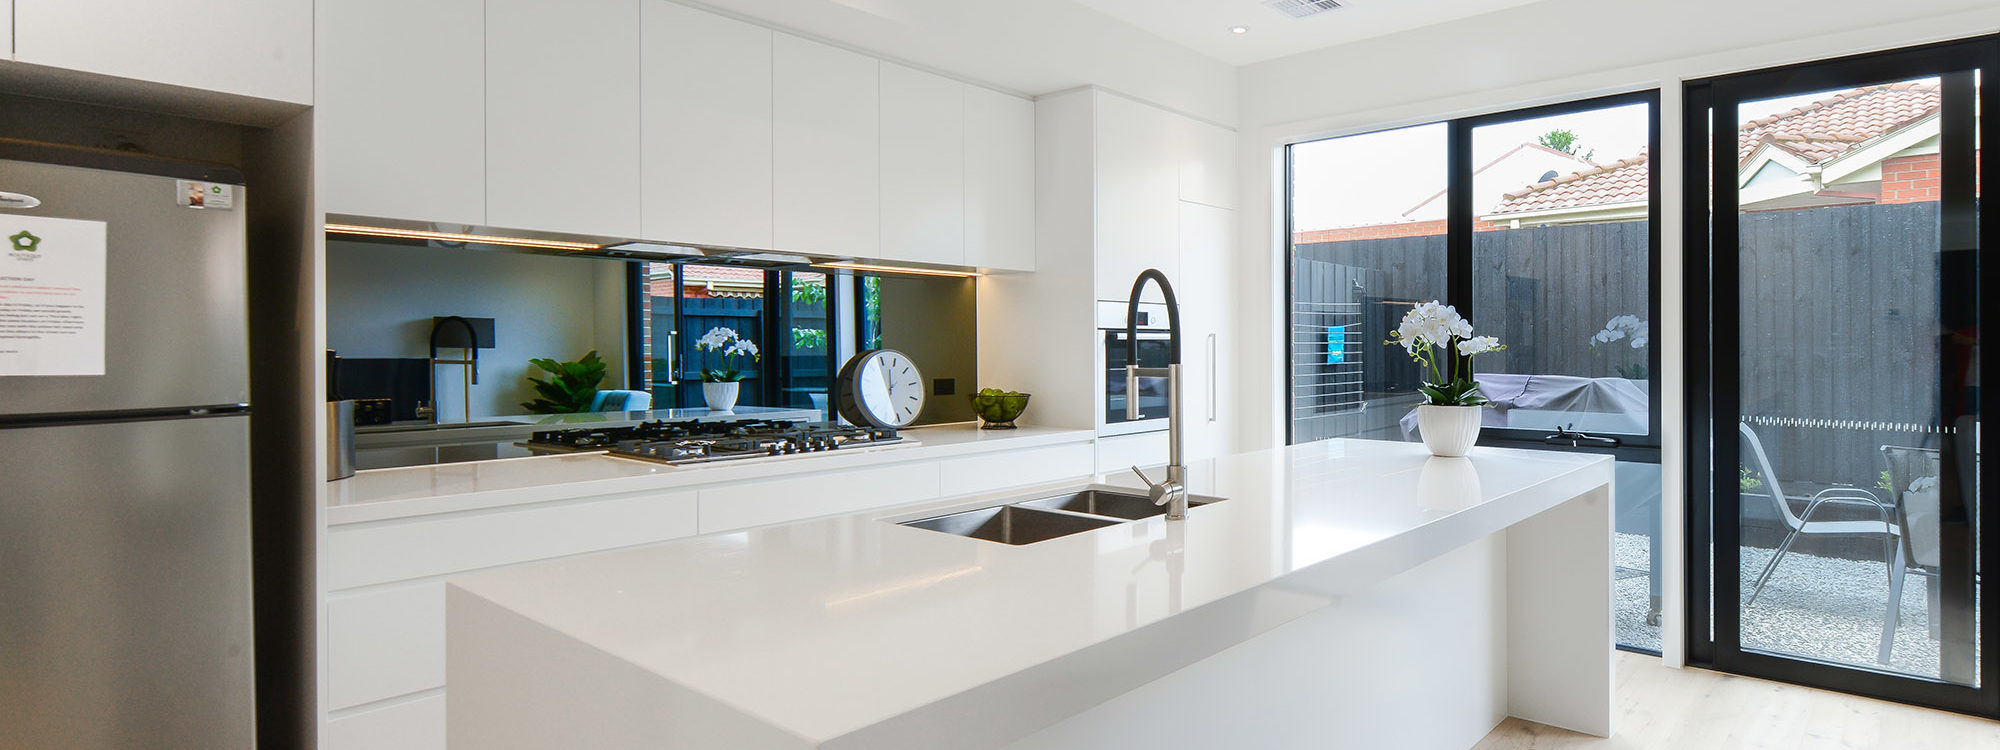 Murrumbeena Place 2 - Murrumbeena - Kitchen Area Countertop